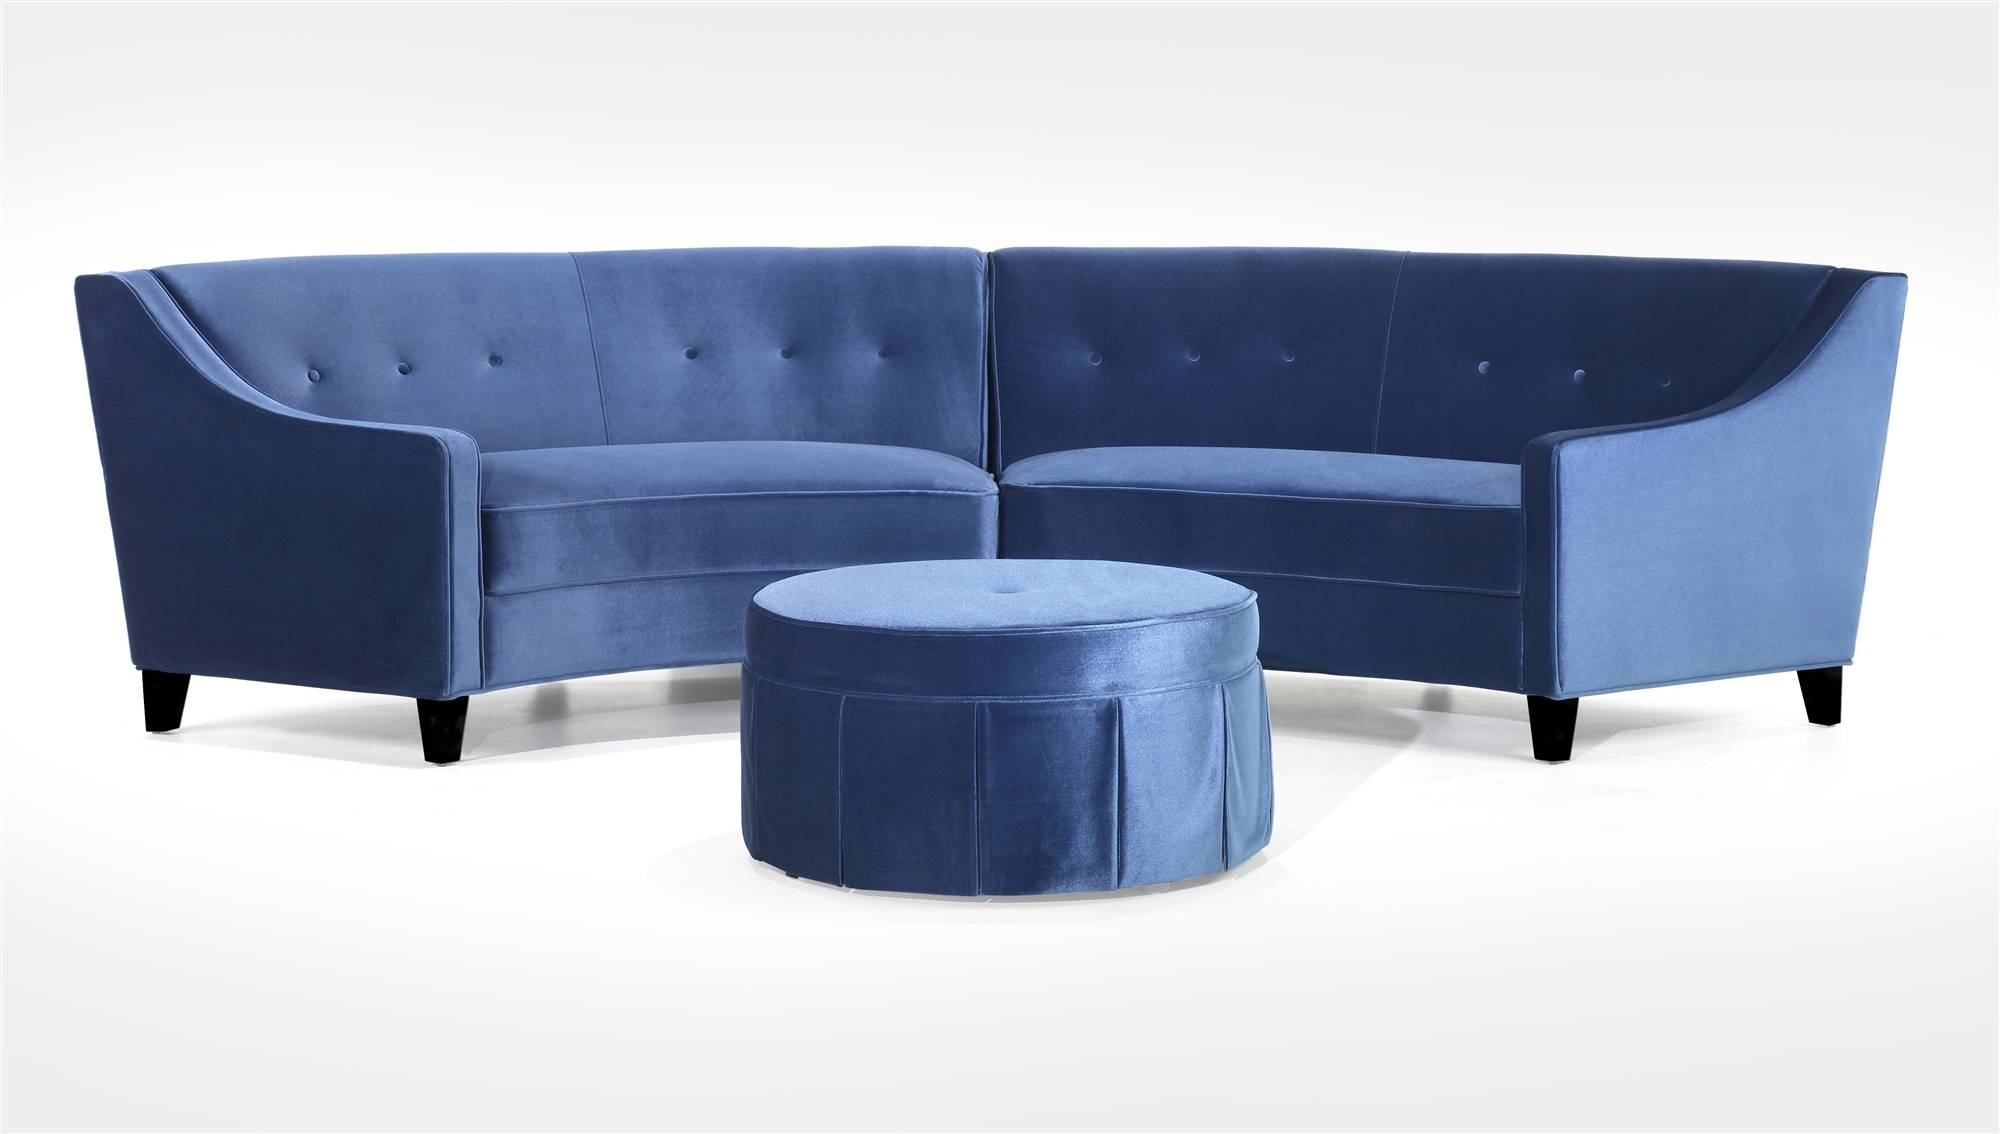 Sofas Center : Navy Blue Tufted Sofa Cre8Tive Designs Inc Royal throughout Blue Tufted Sofas (Image 26 of 30)